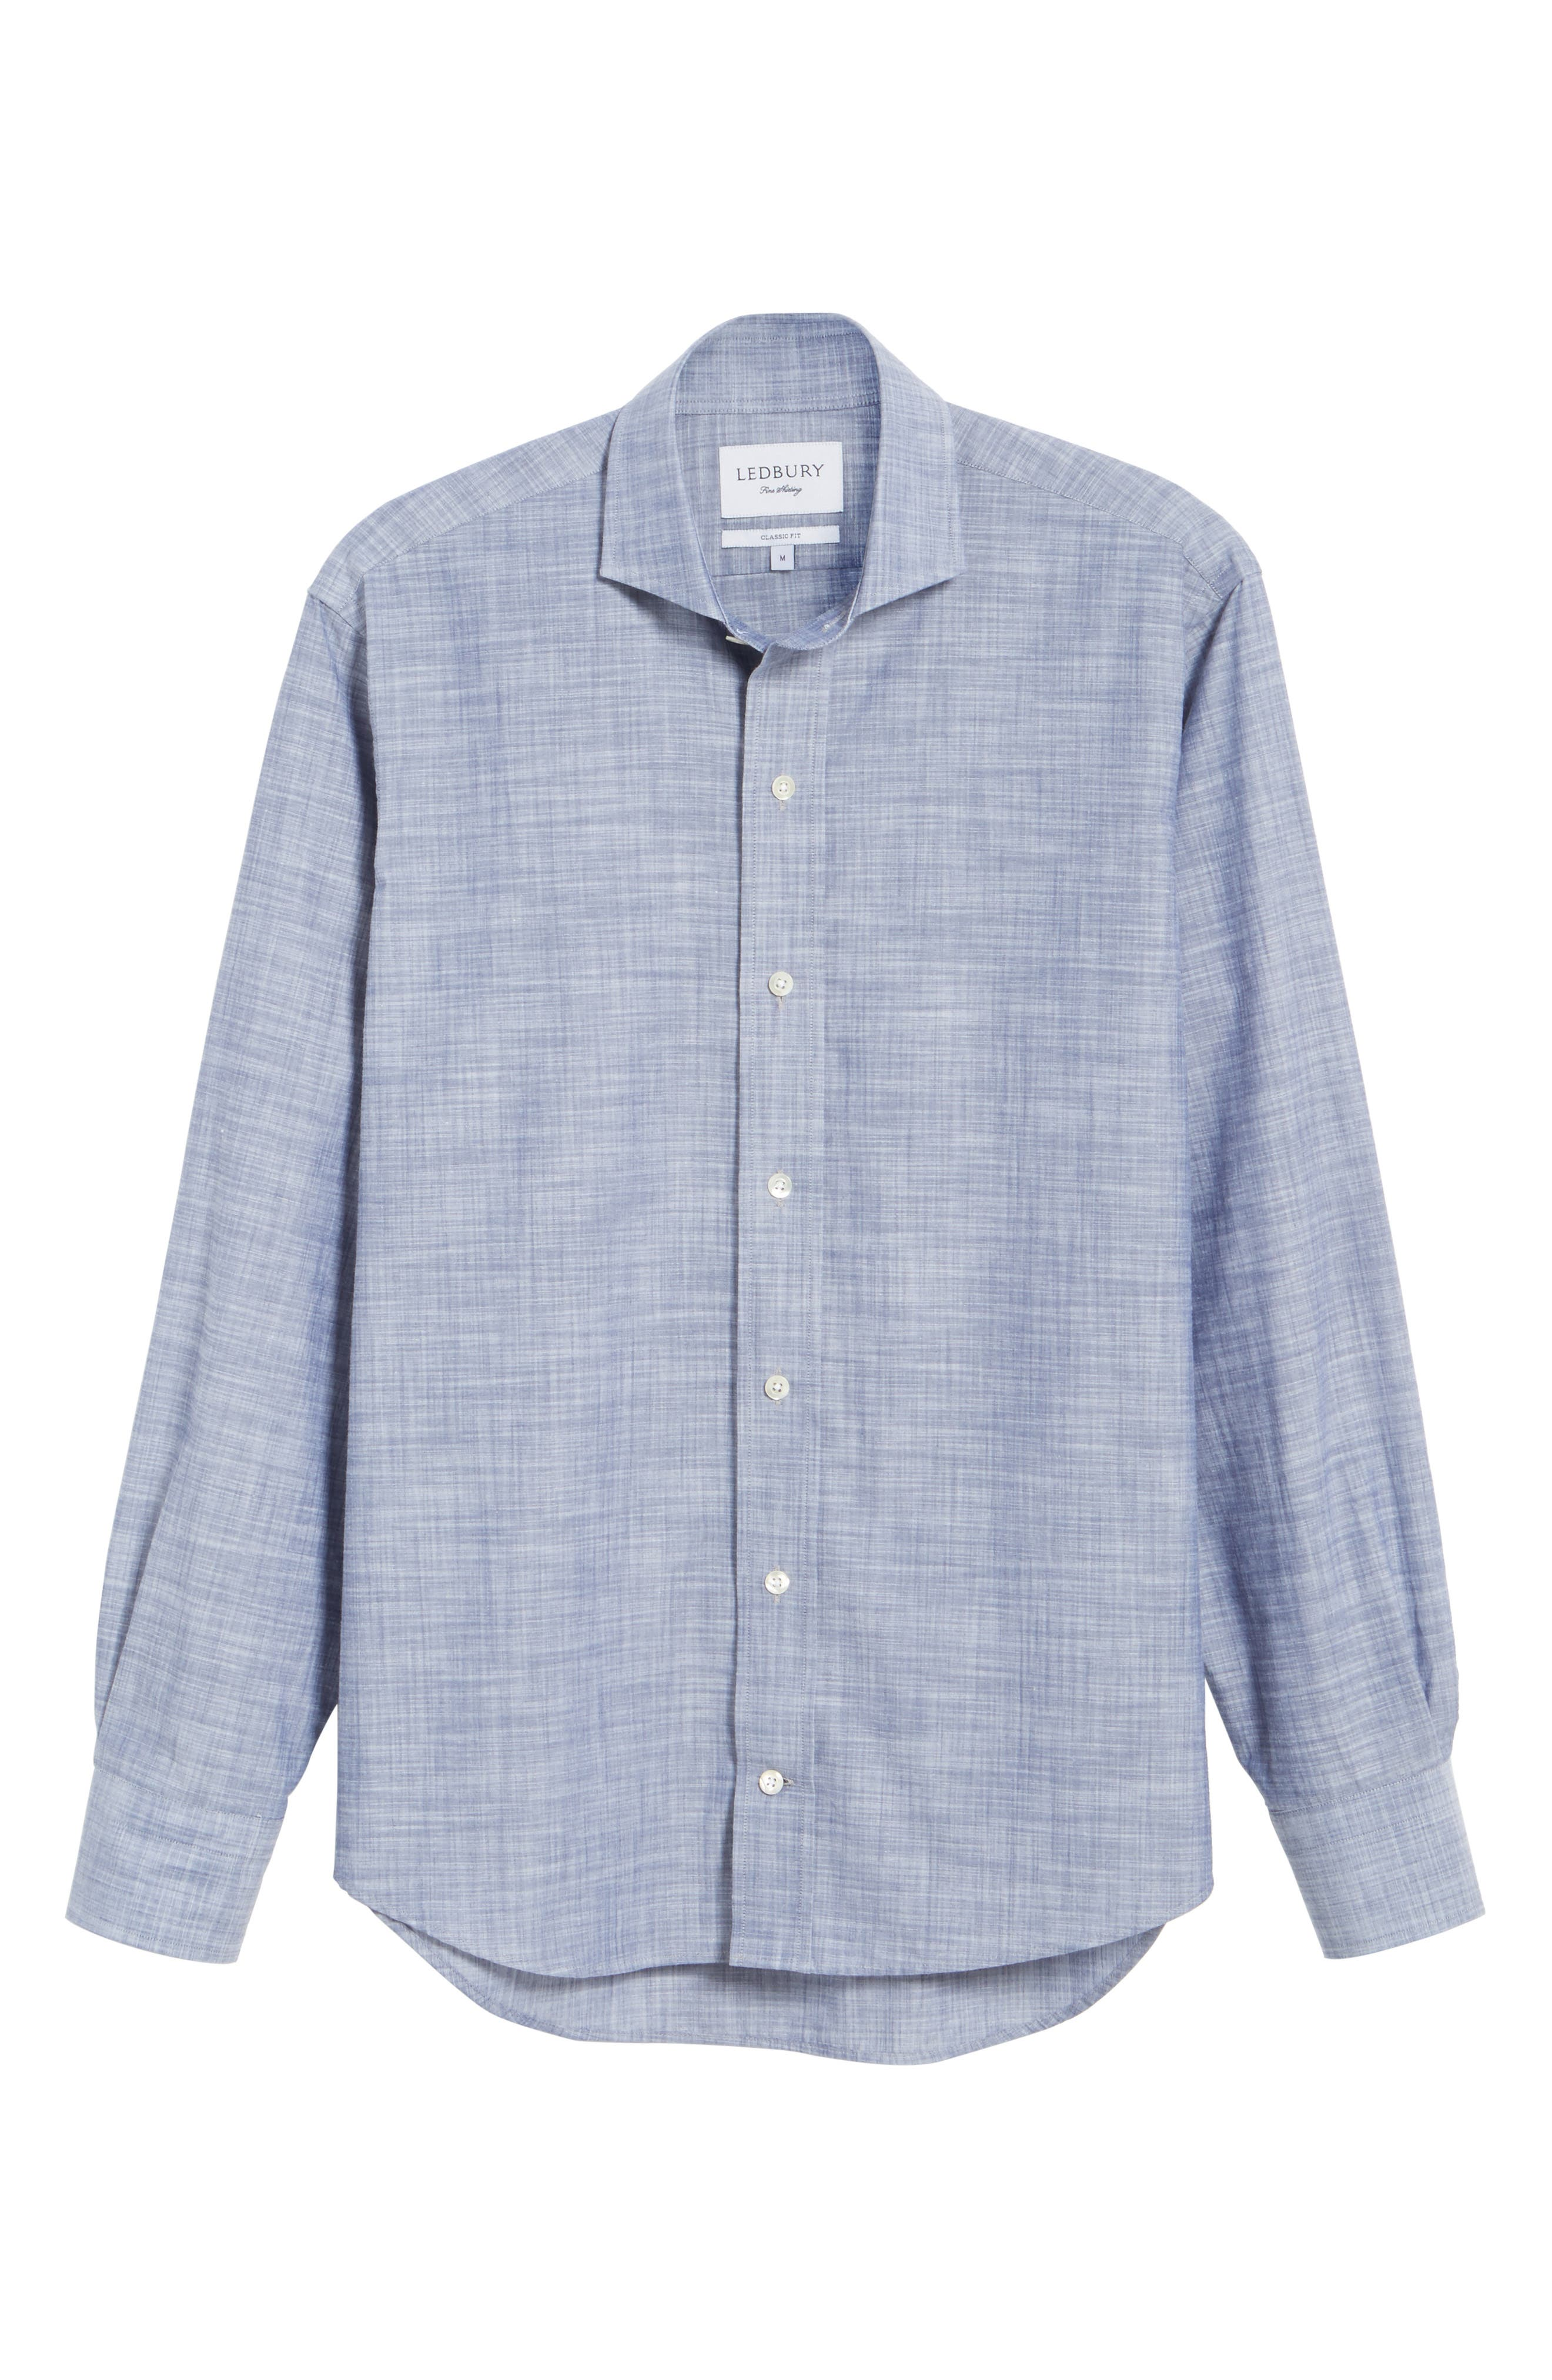 The McDaniel Classic Fit Chambray Sport Shirt,                             Alternate thumbnail 6, color,                             020